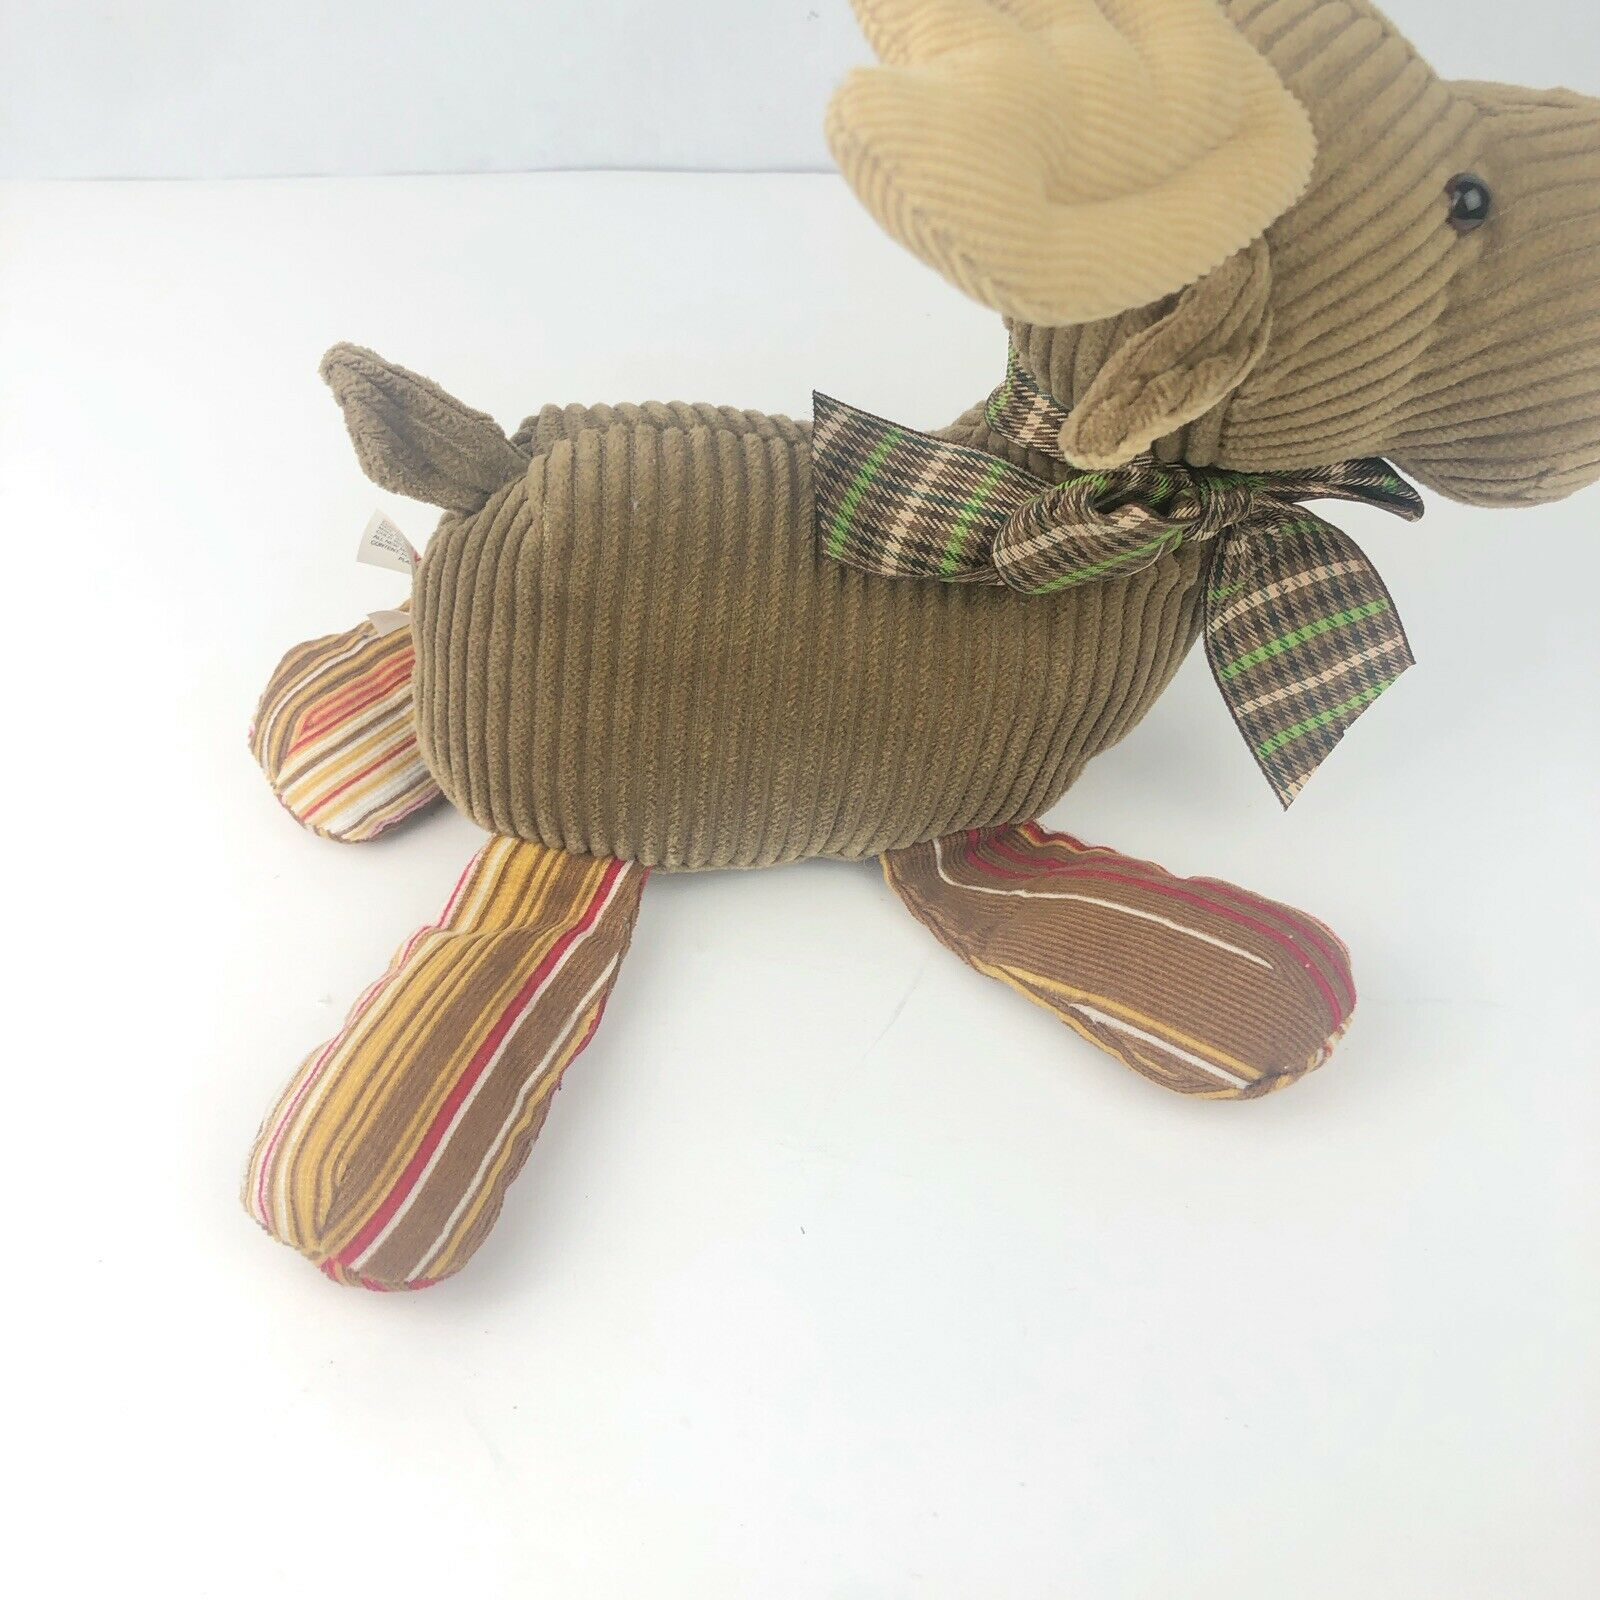 "Gund Chester Plush Moose 12"" Stuffed Beans Cordy Fall Friends Original Tags Toy image 8"